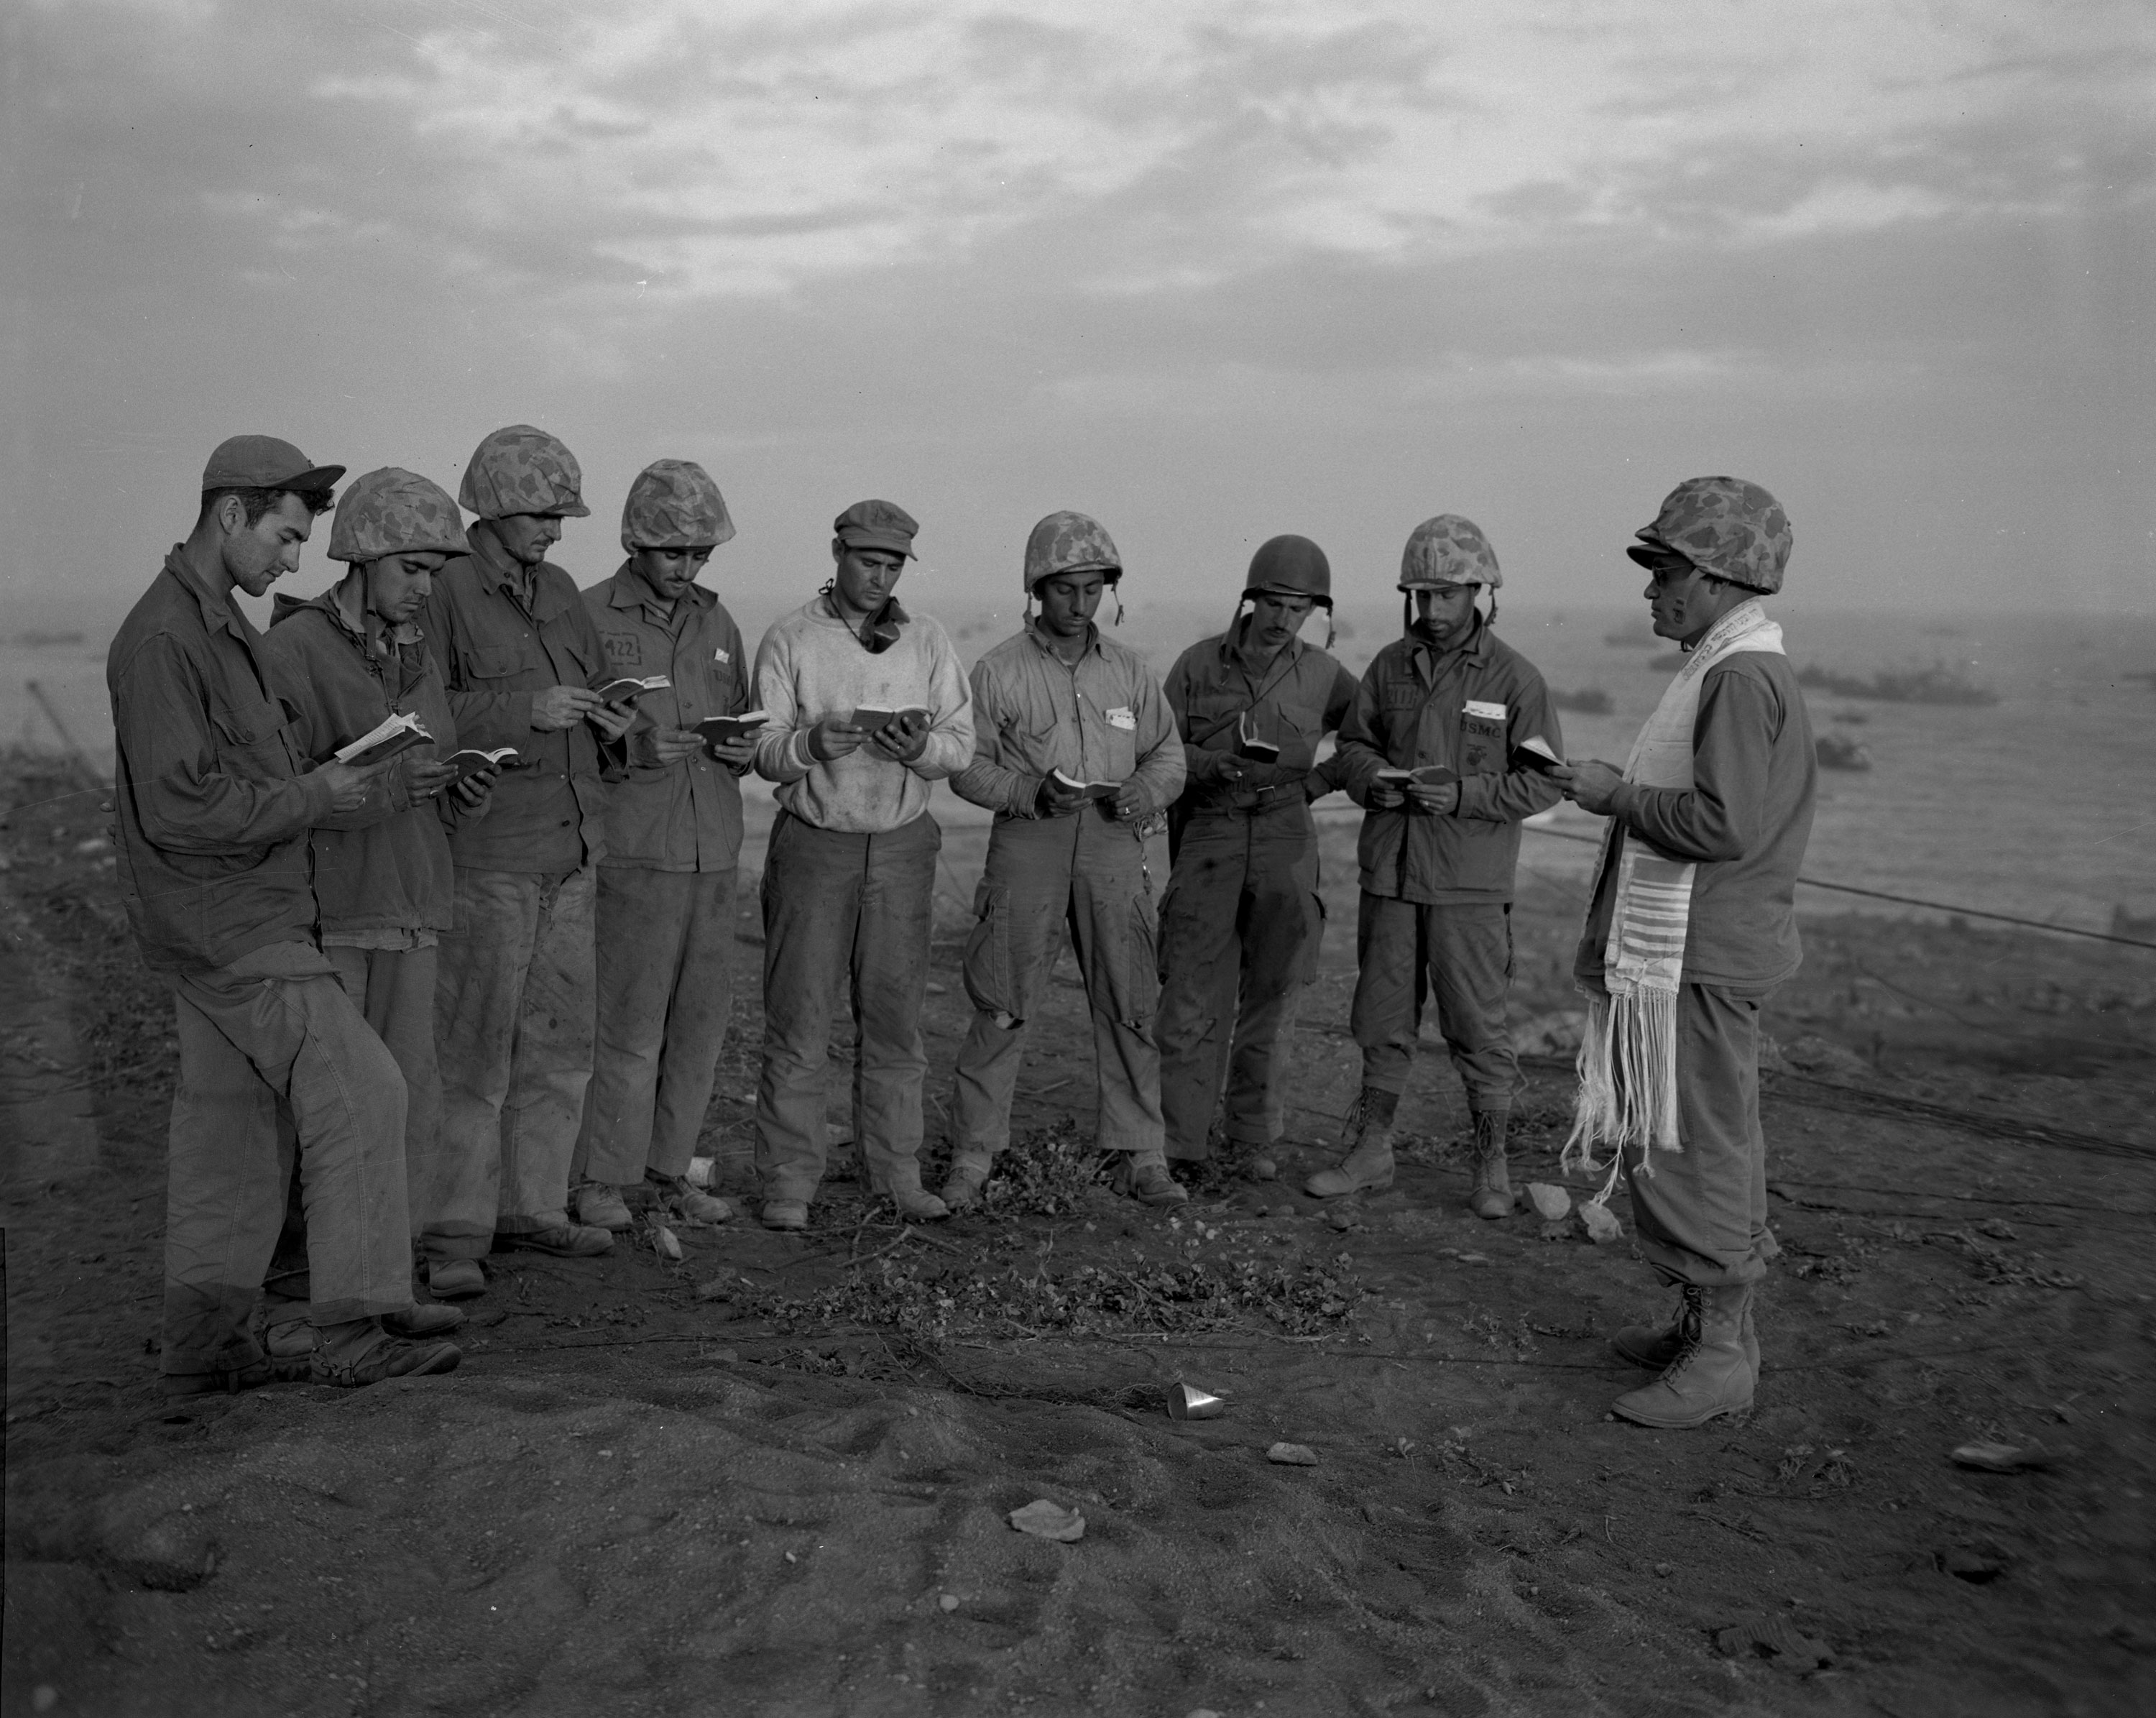 Rabbi Roland Gittelsohn, far right, conducting the first Jewish service for members of the 5th MarDiv--Iwo Jima, February 1945